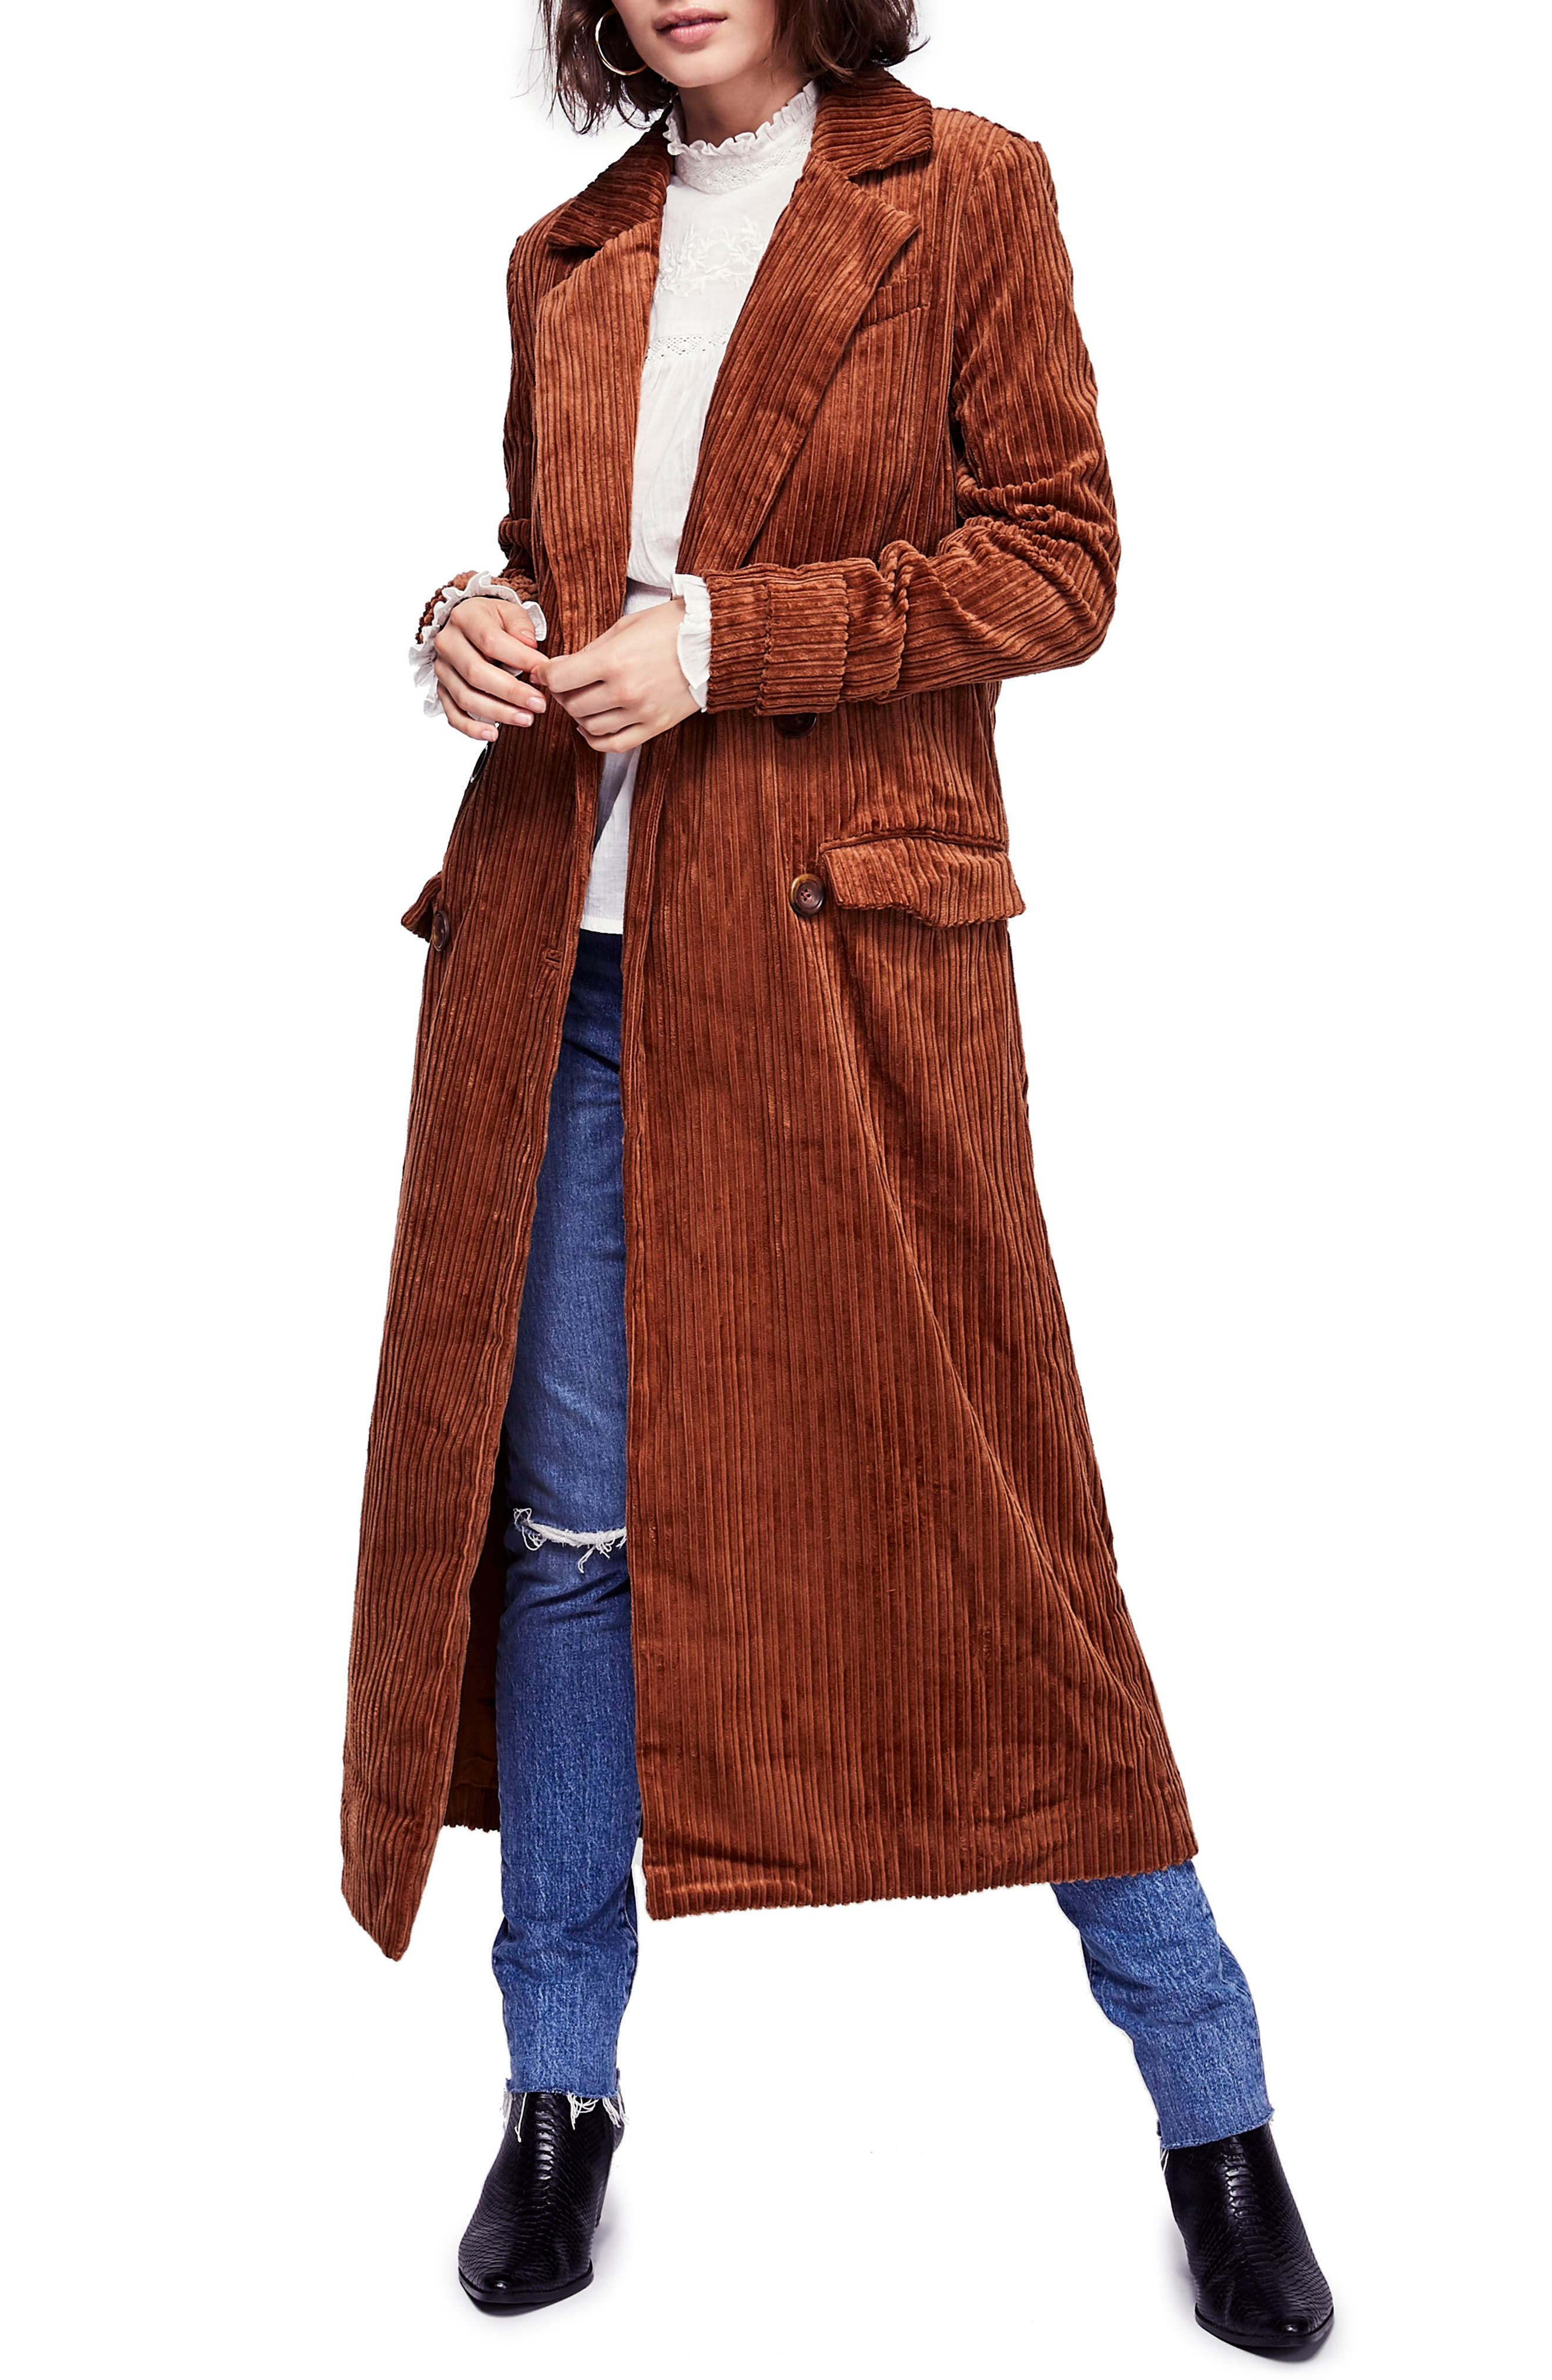 Abbey Road Wide Wale Cotton Corduroy Duster Coat by Free People